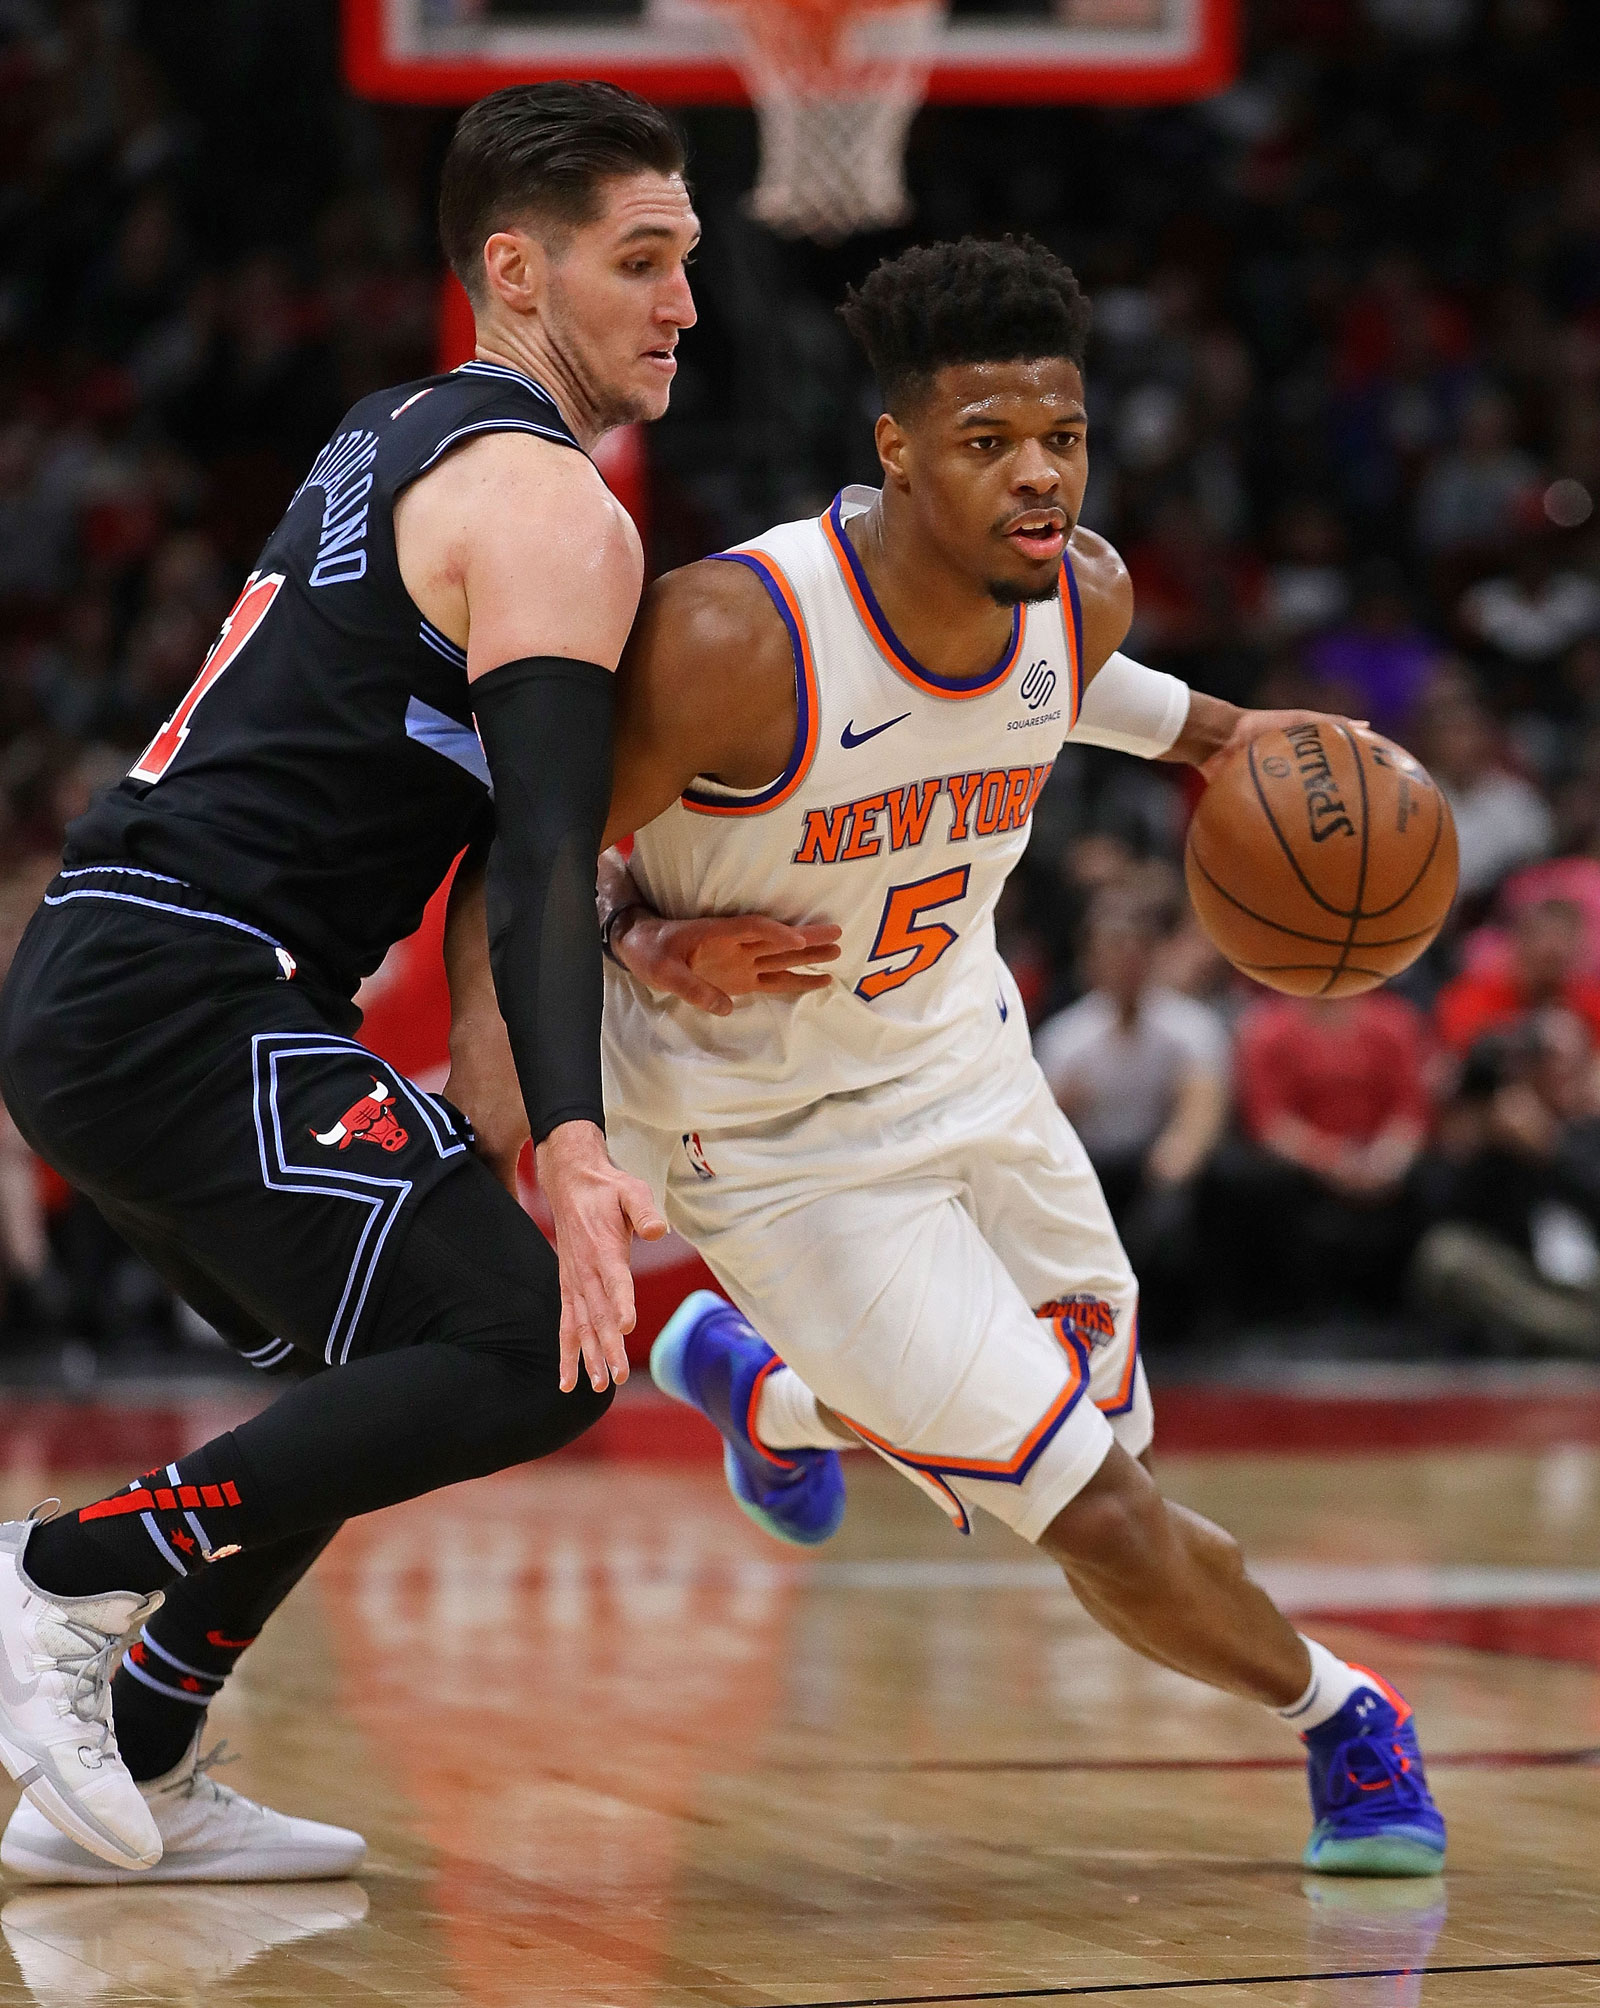 Dennis Smith Jr. #5 of the New York Knicksdrives against Ryan Arcidiacono #51 of the Chicago Bulls at the United Center on April 09, 2019 in Chicago, Illinois.